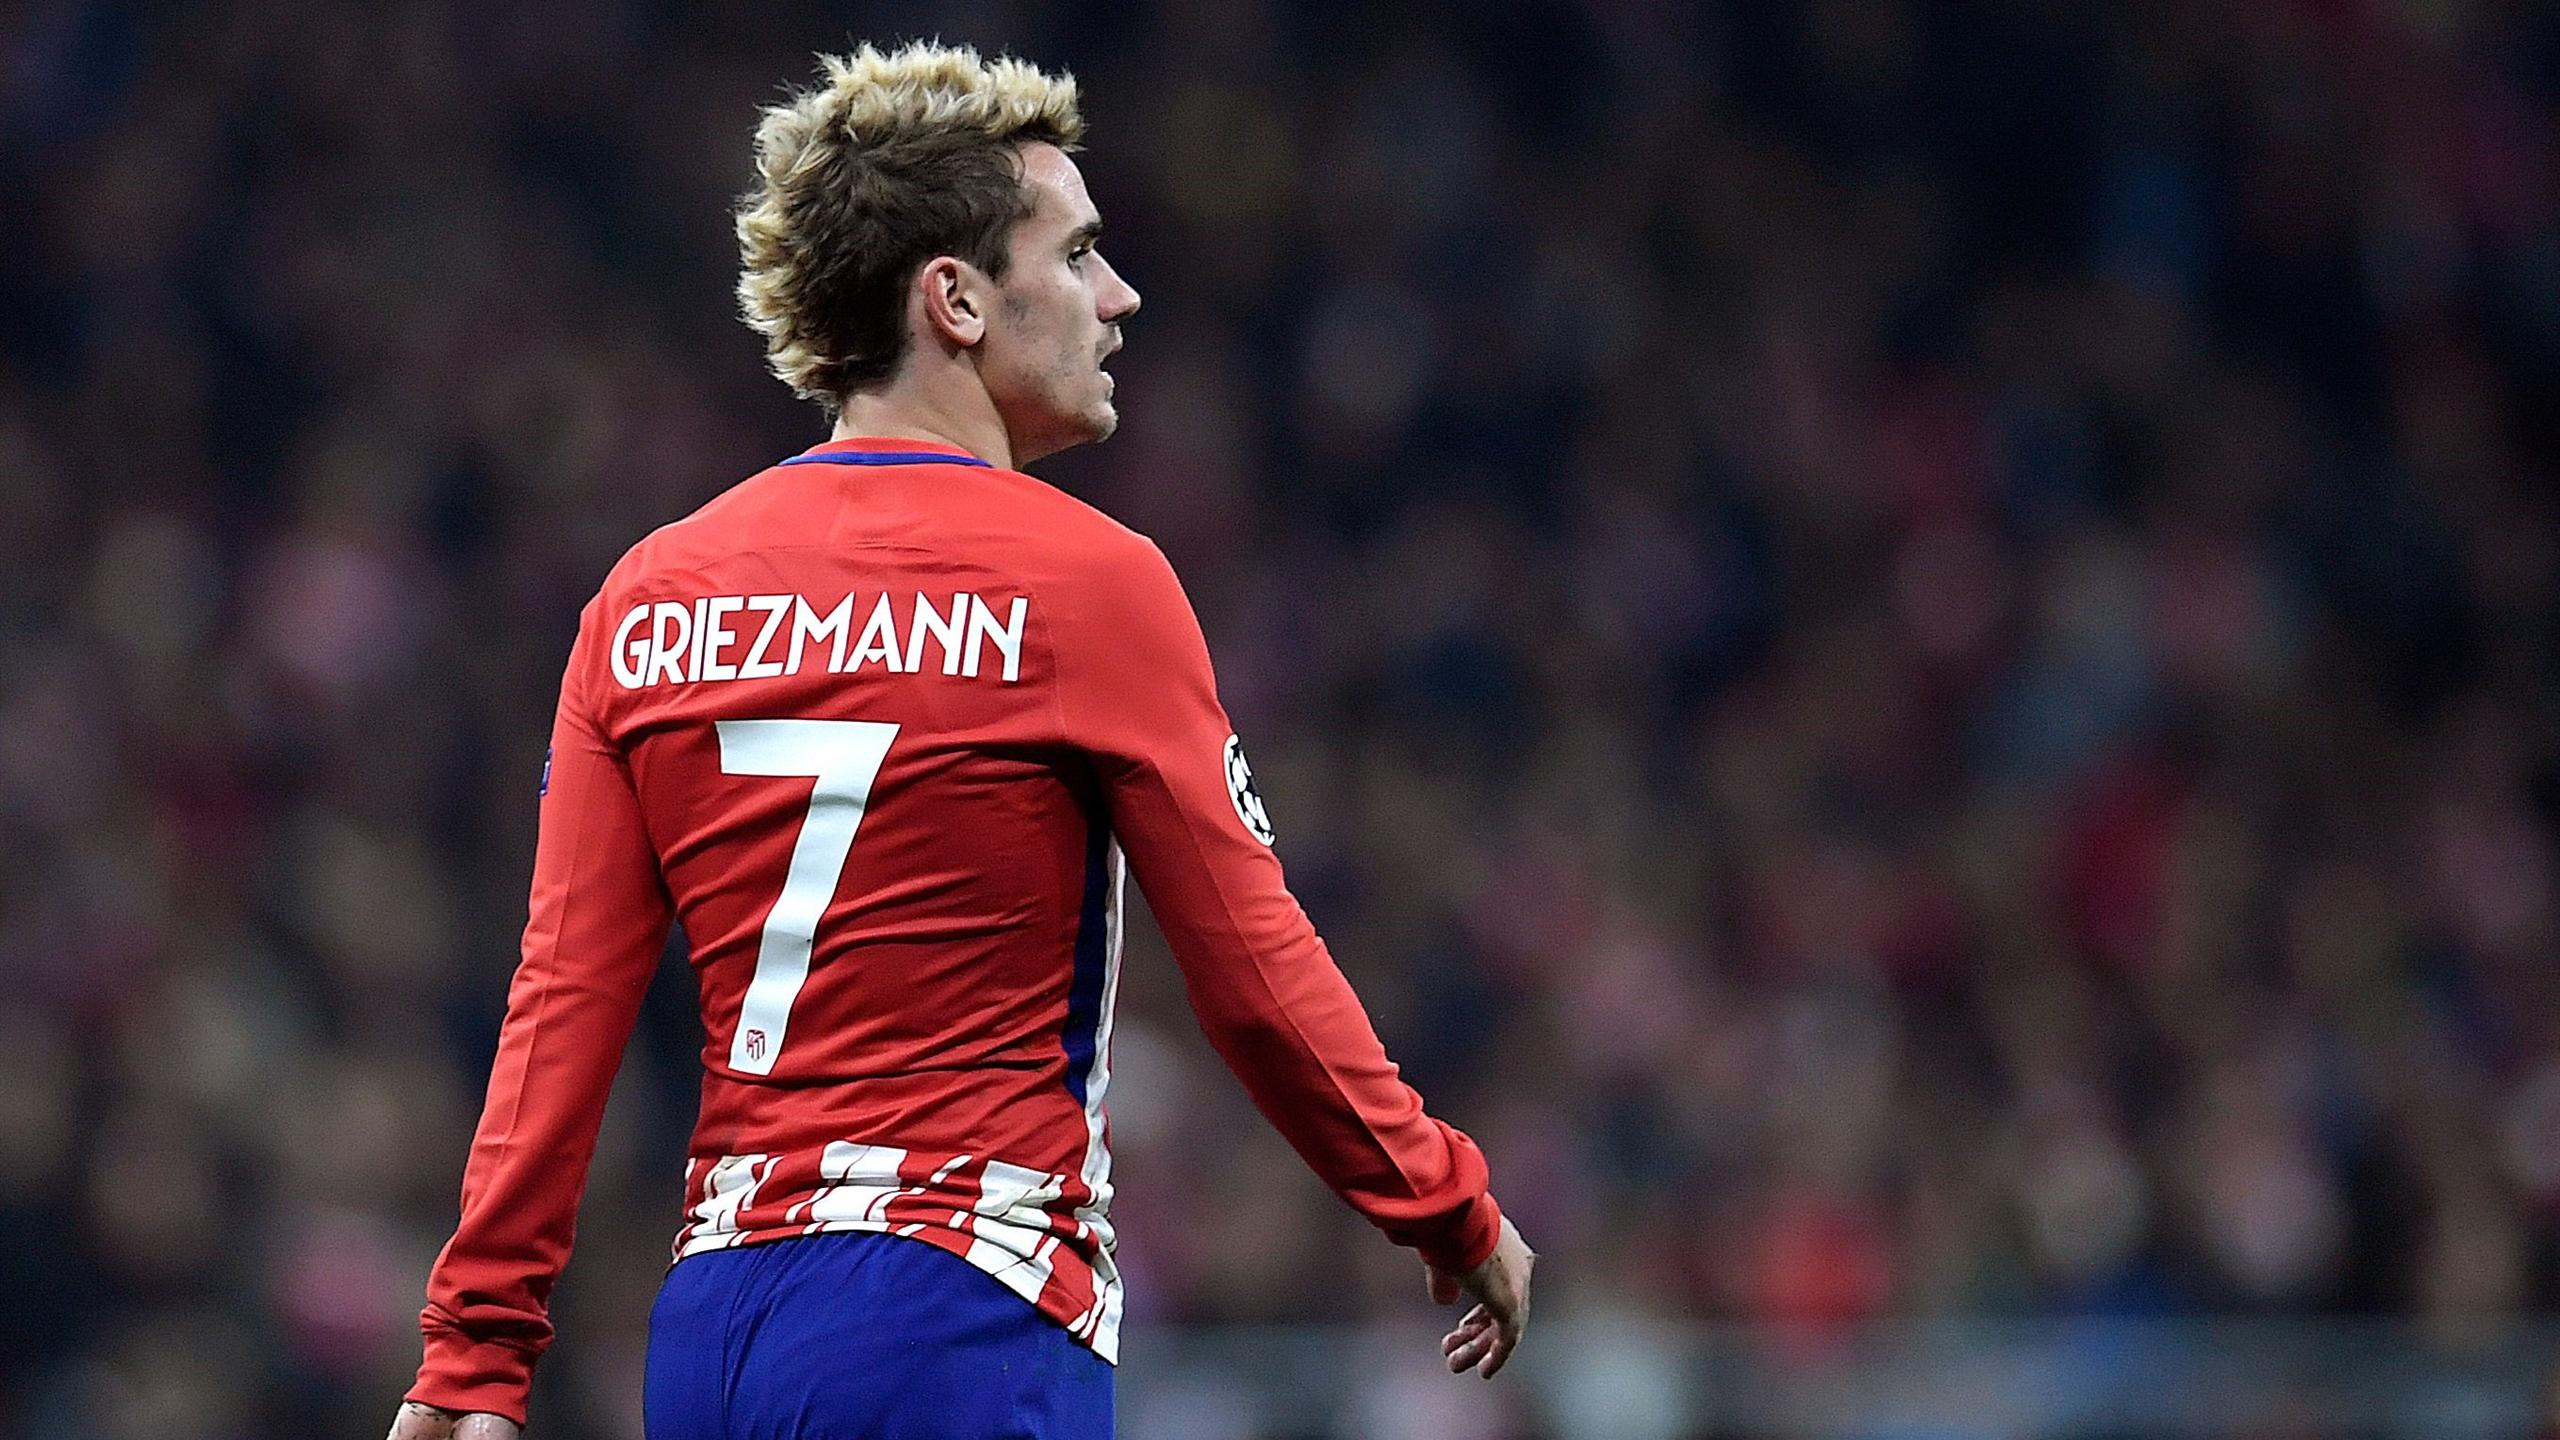 Manchester United target Antoine Griezmann will be allowed to leave     Manchester United target Antoine Griezmann will be allowed to leave  Atletico Madrid  says Simeone   Football   Eurosport UK